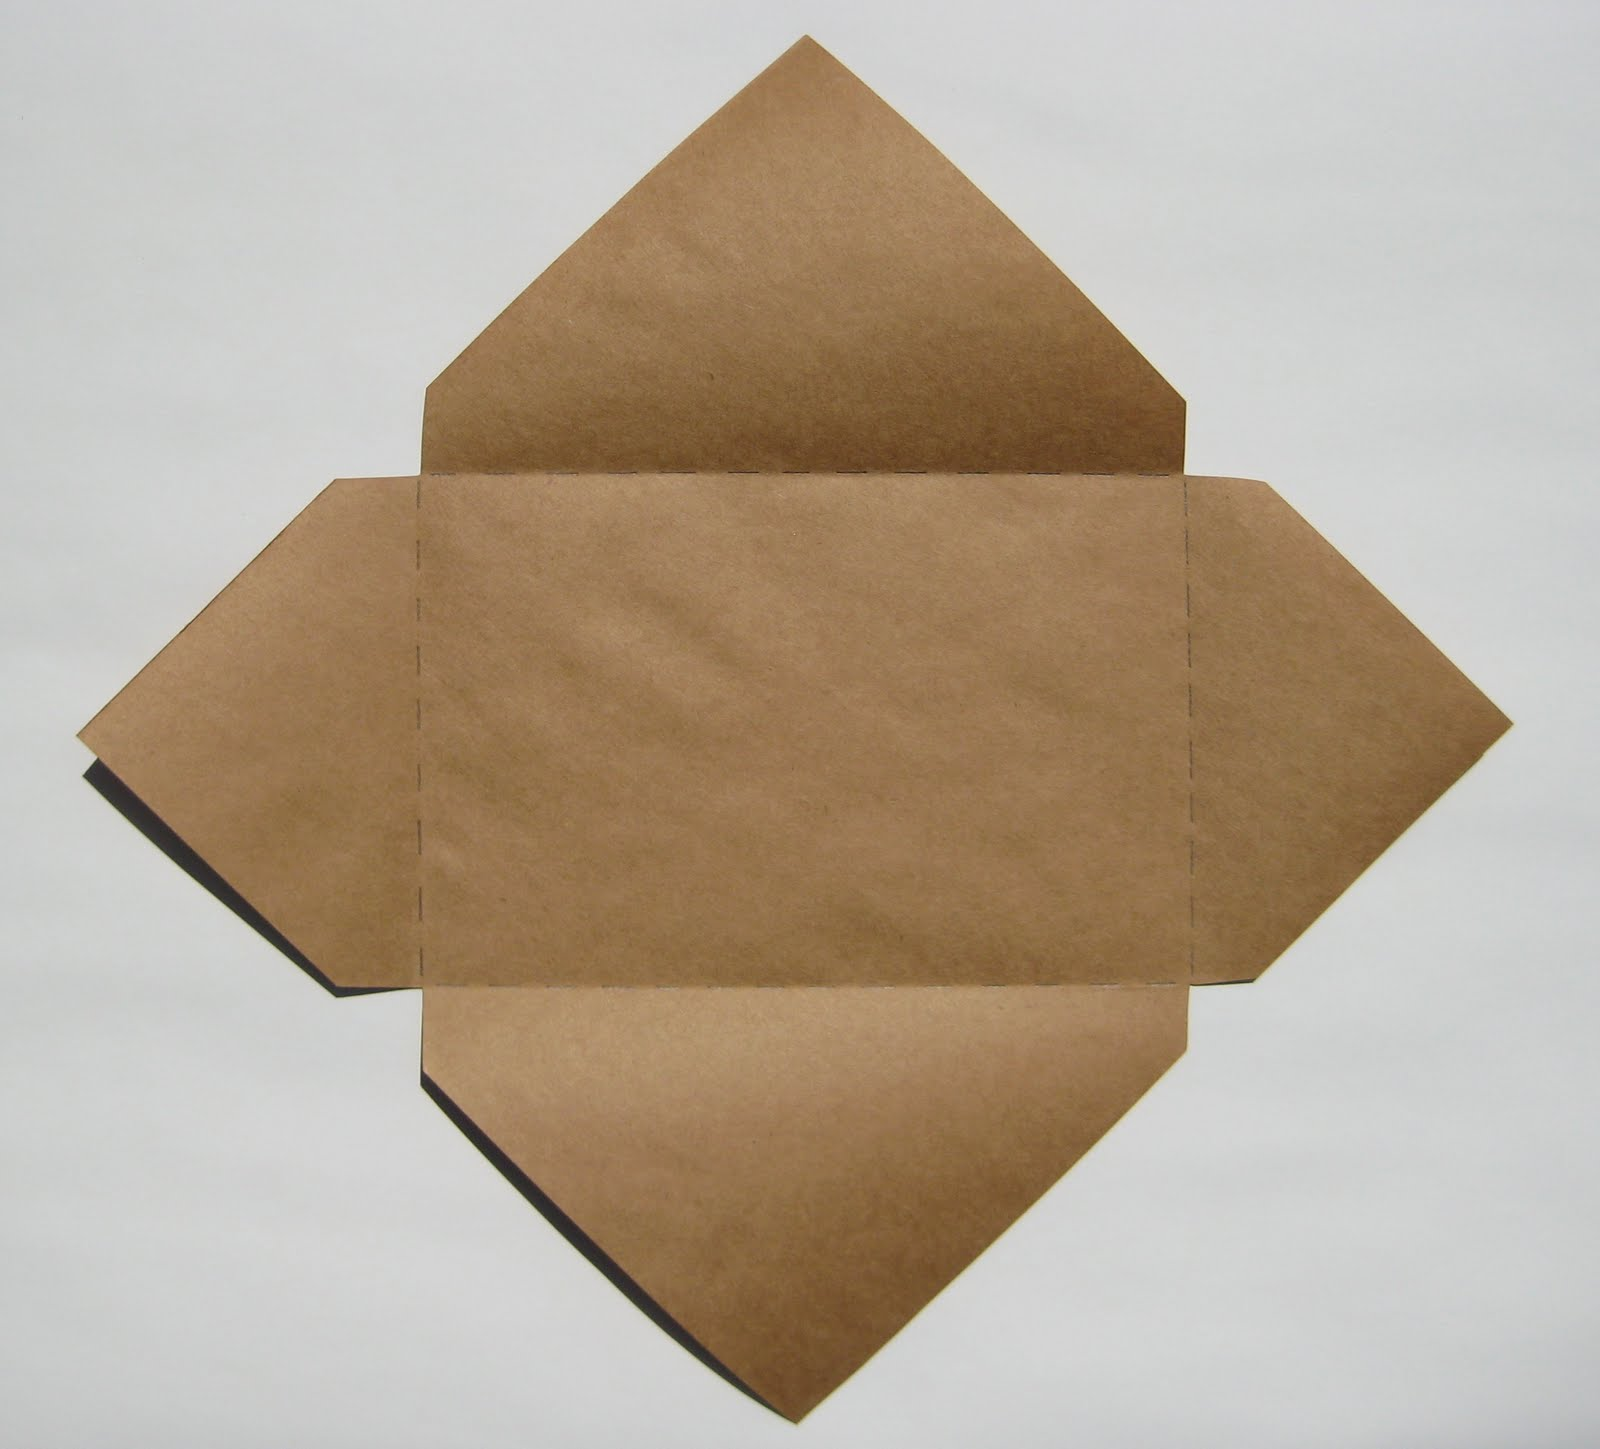 Easy envelopes for handmade cards teachkidsart dont even need to measure their paper they just need to understand the concept of starting with a square thats a little bit larger than the card bookmarktalkfo